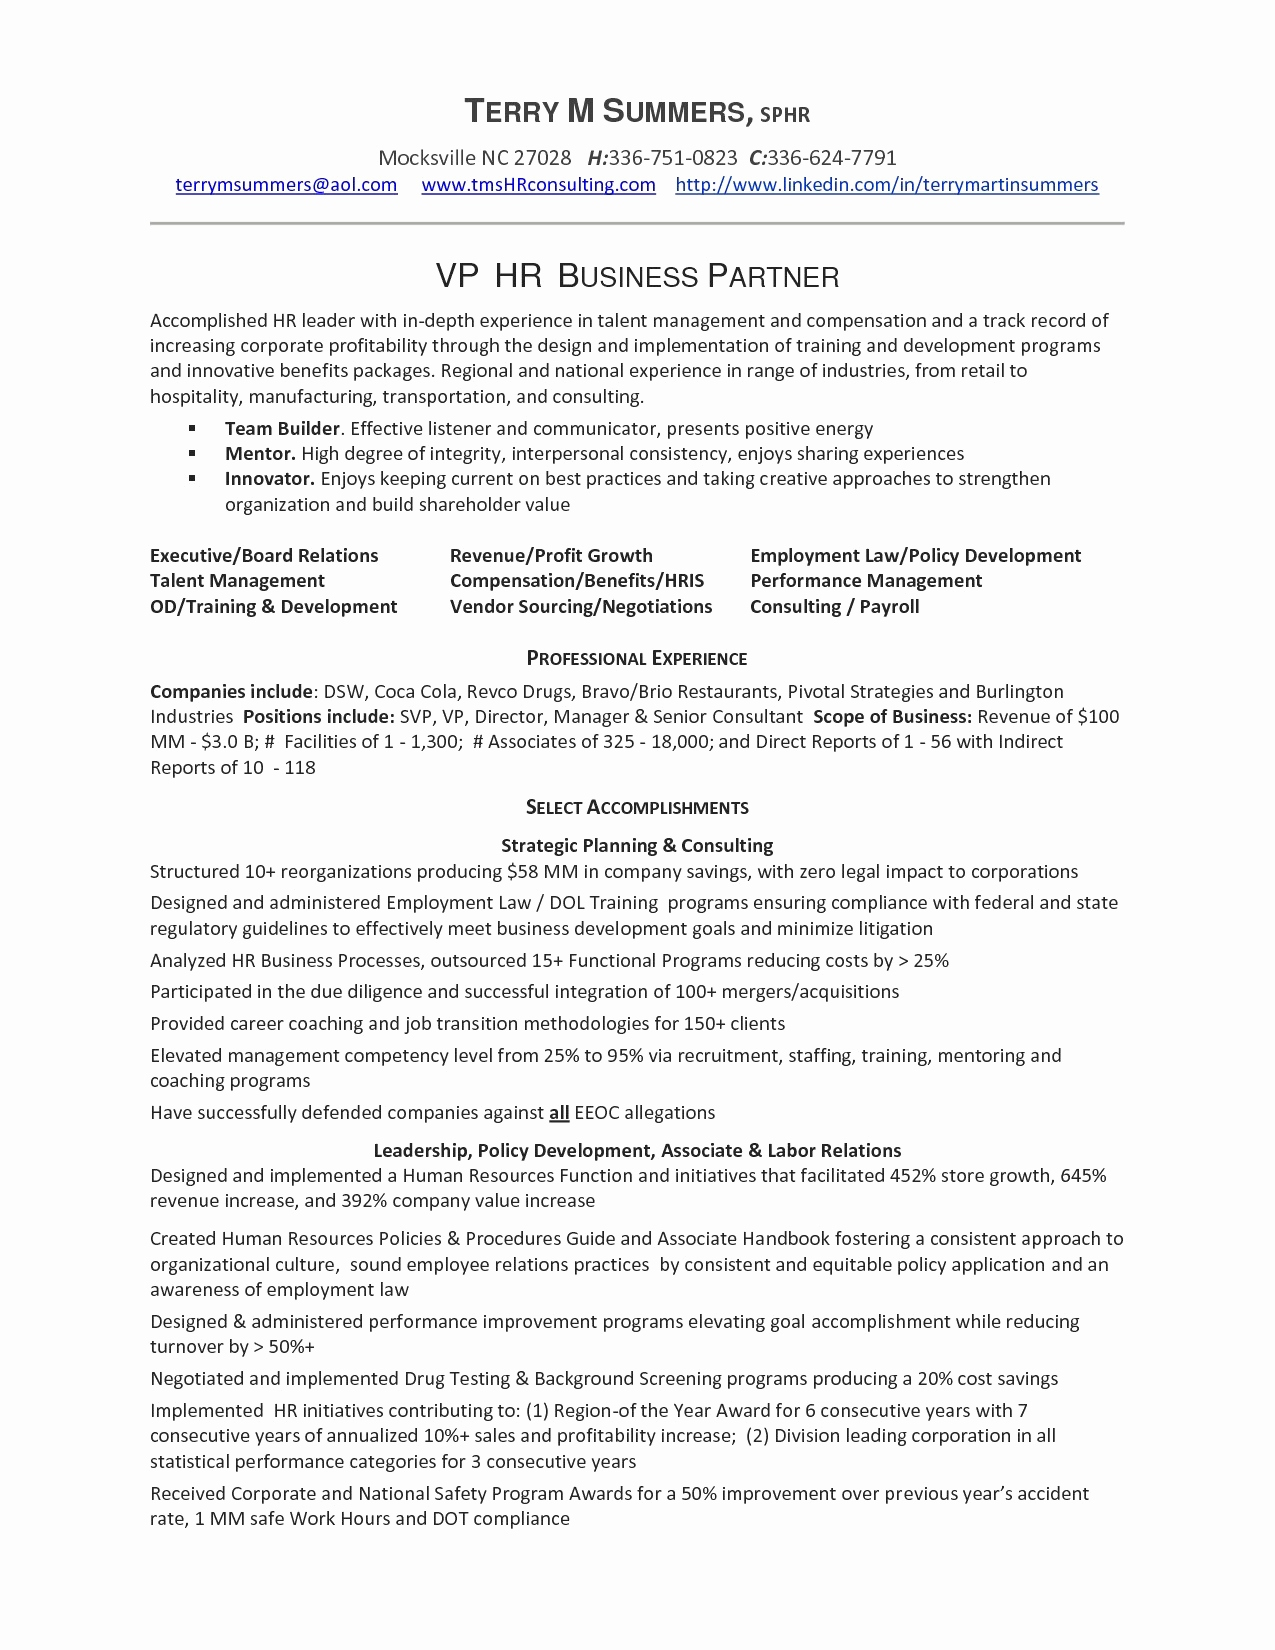 Barista Resume Template - Restaurant Financial Statements Templates and Barista Resume Cover